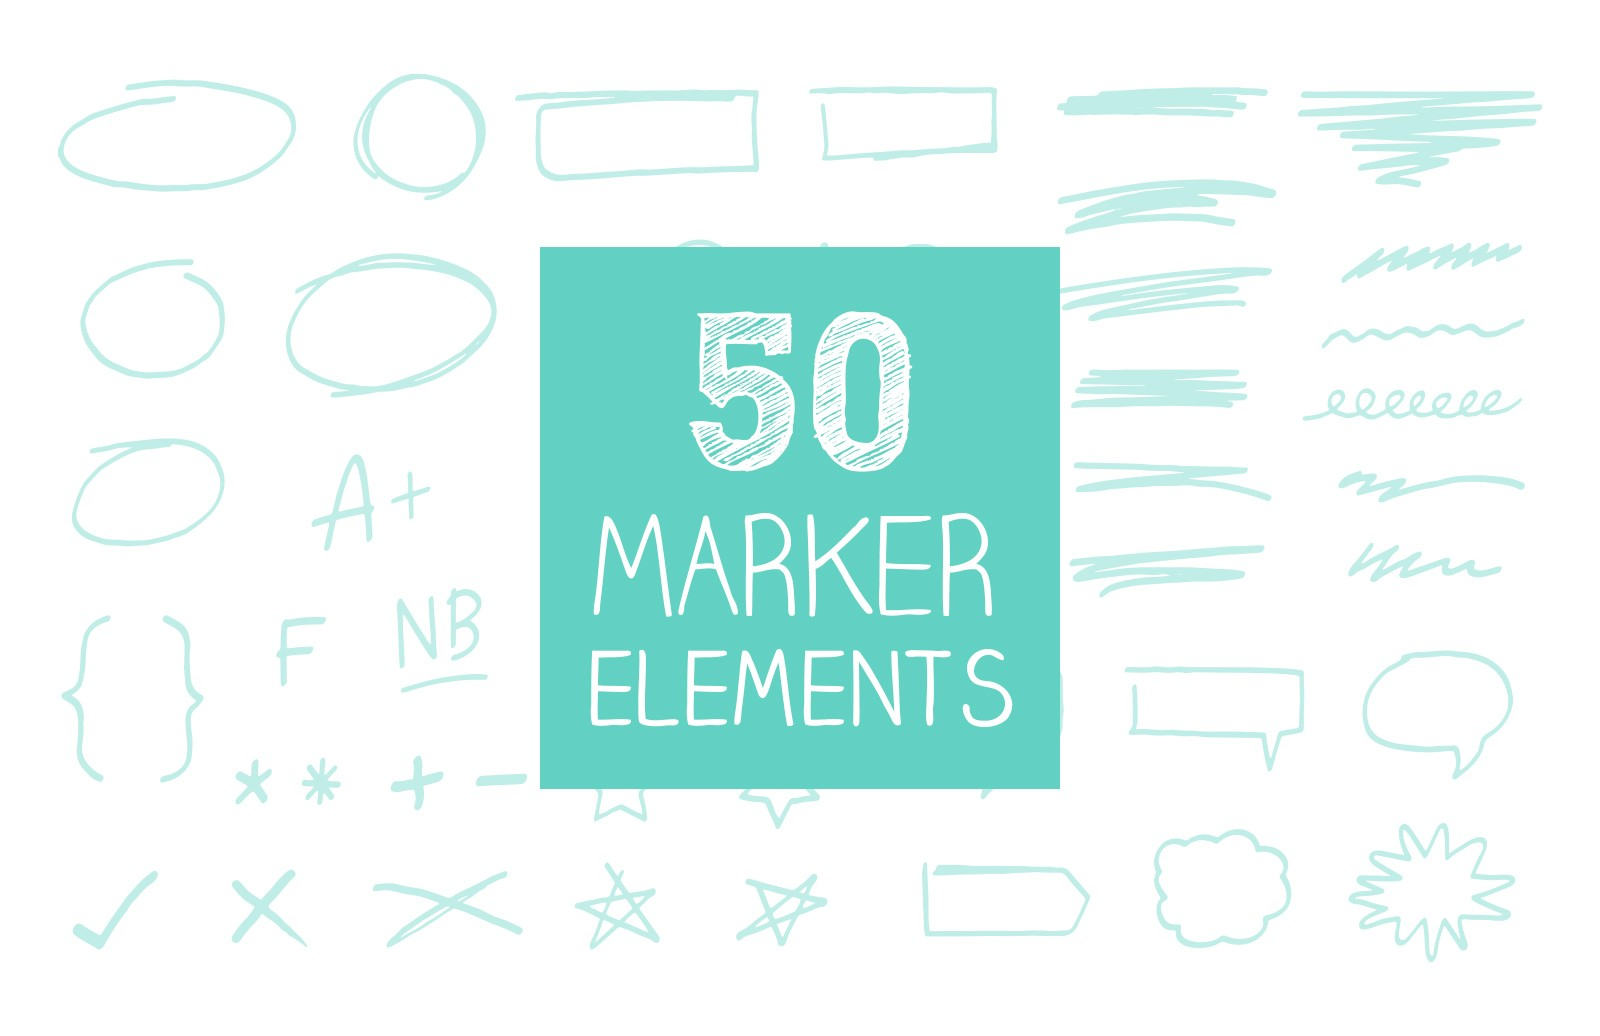 Hand Drawn Marker Elements